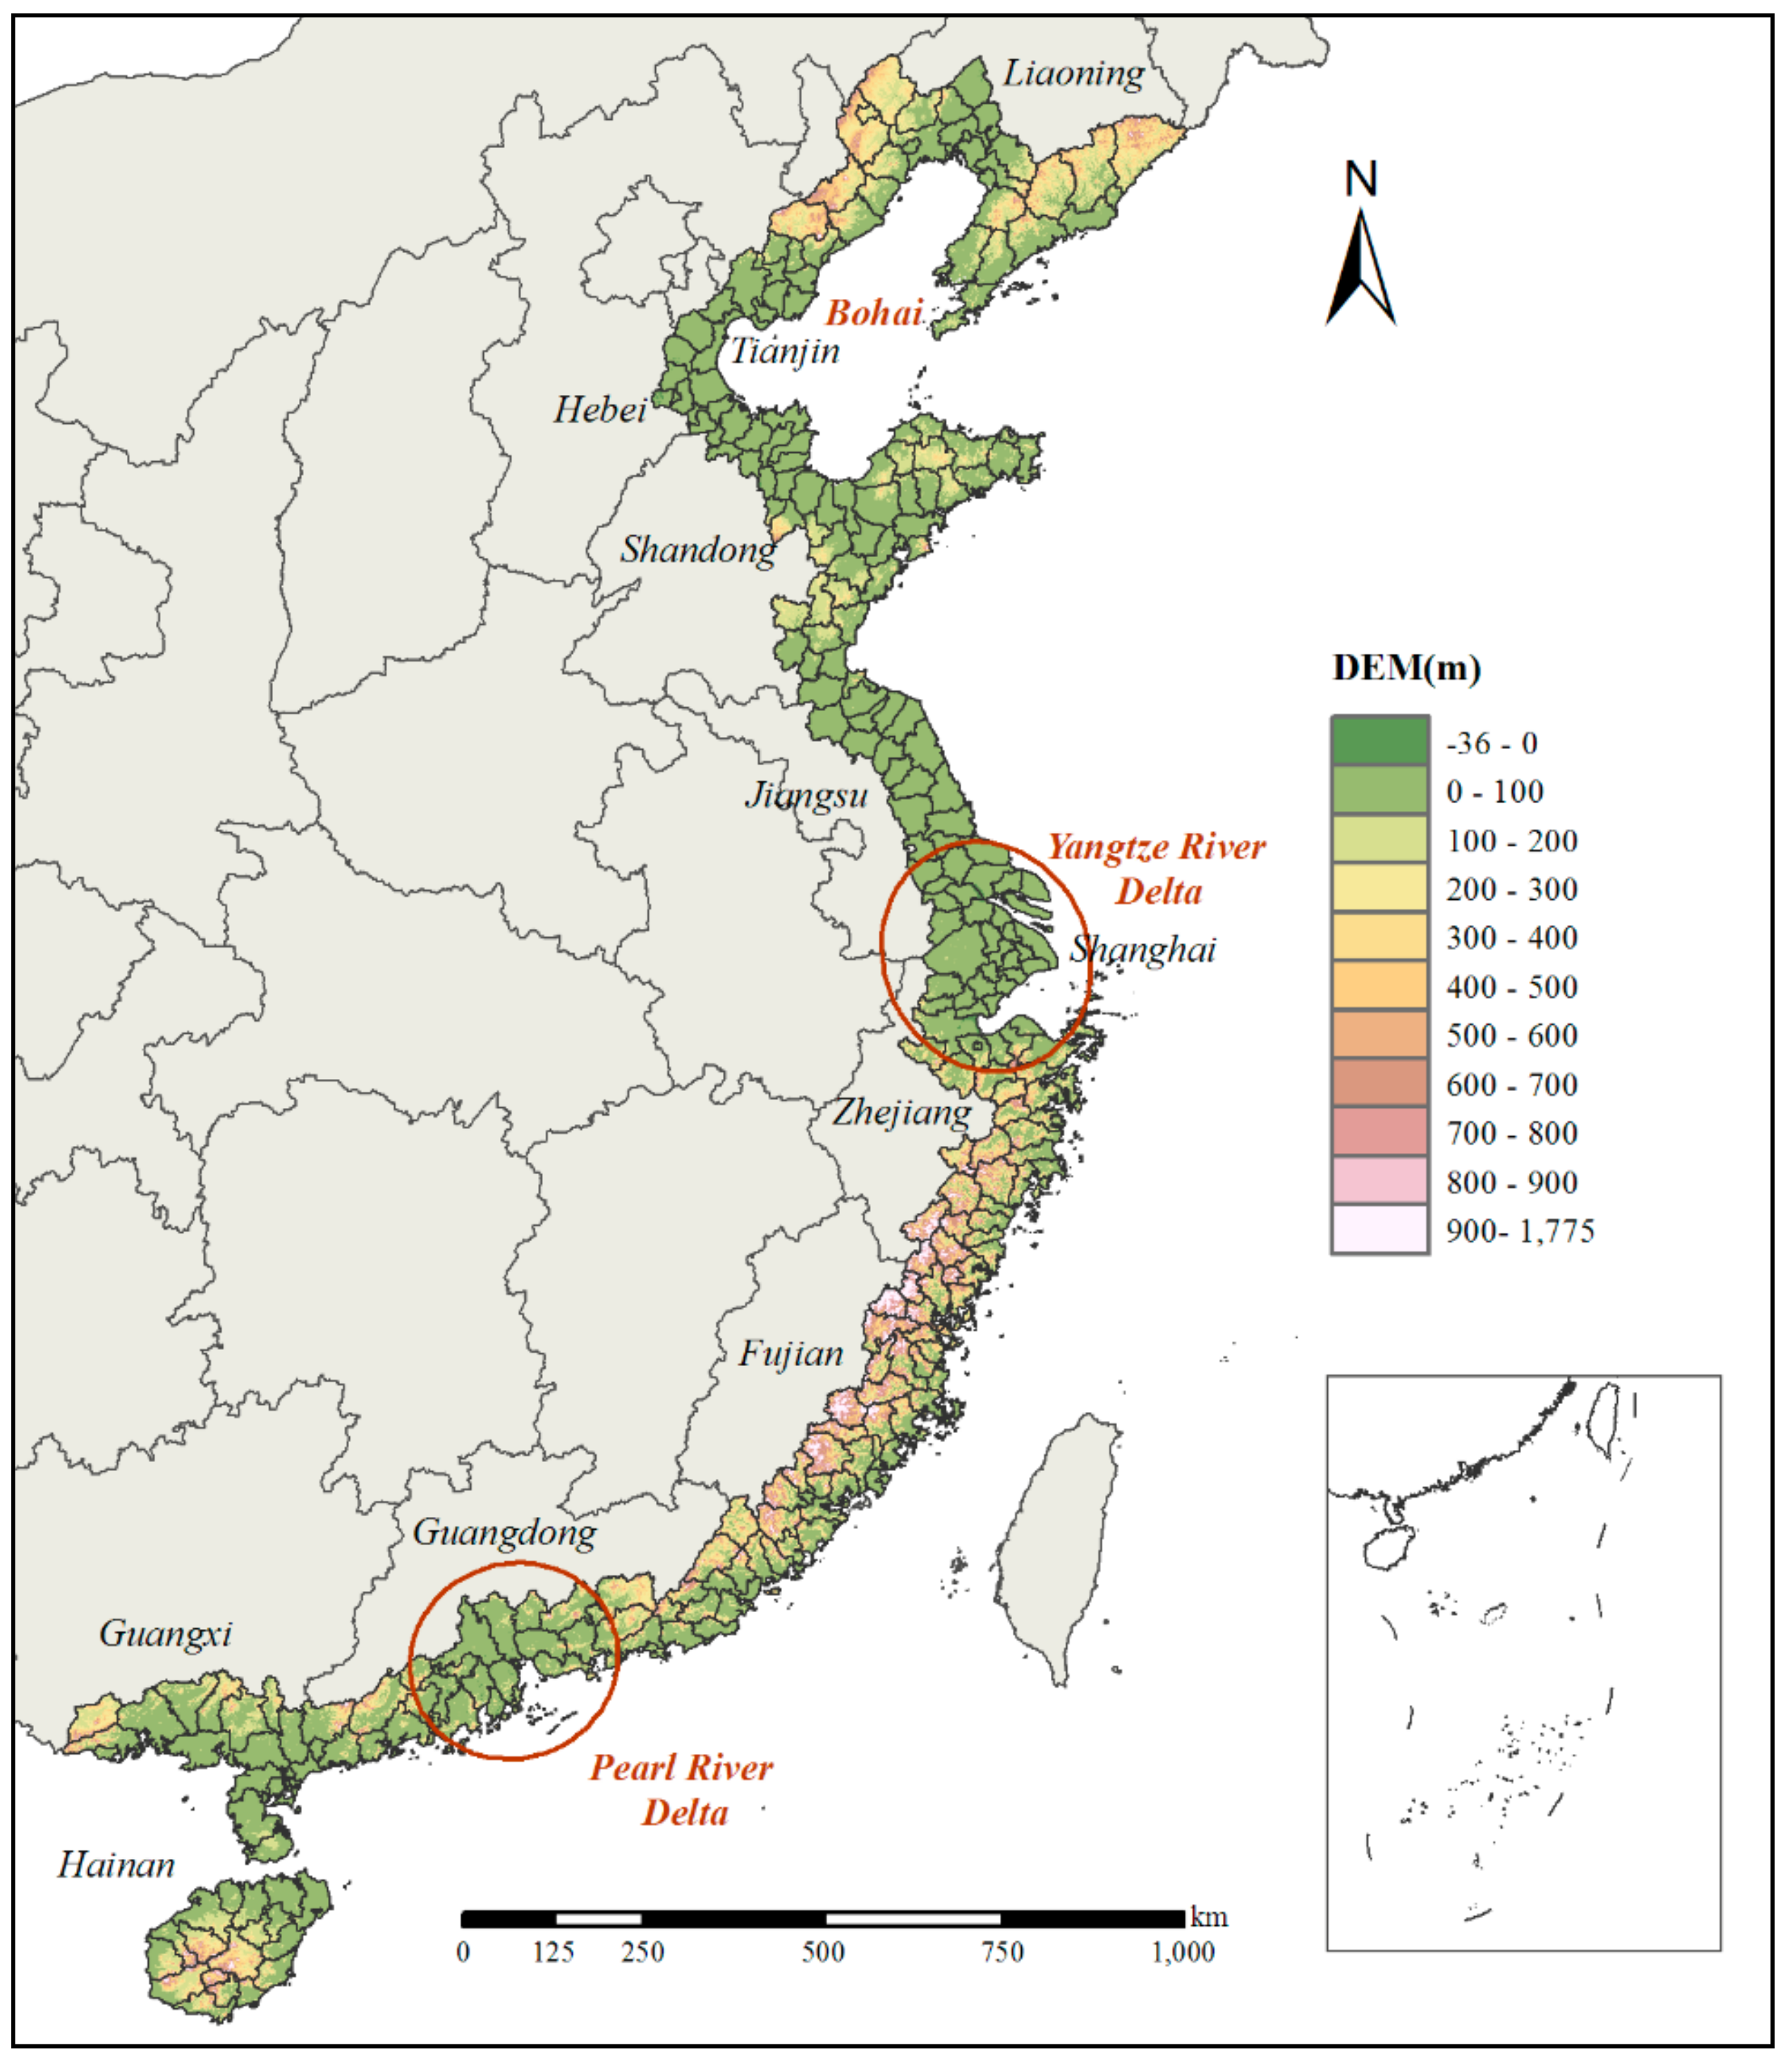 Sustainability | Free Full-Text | Spatially Explicit ...